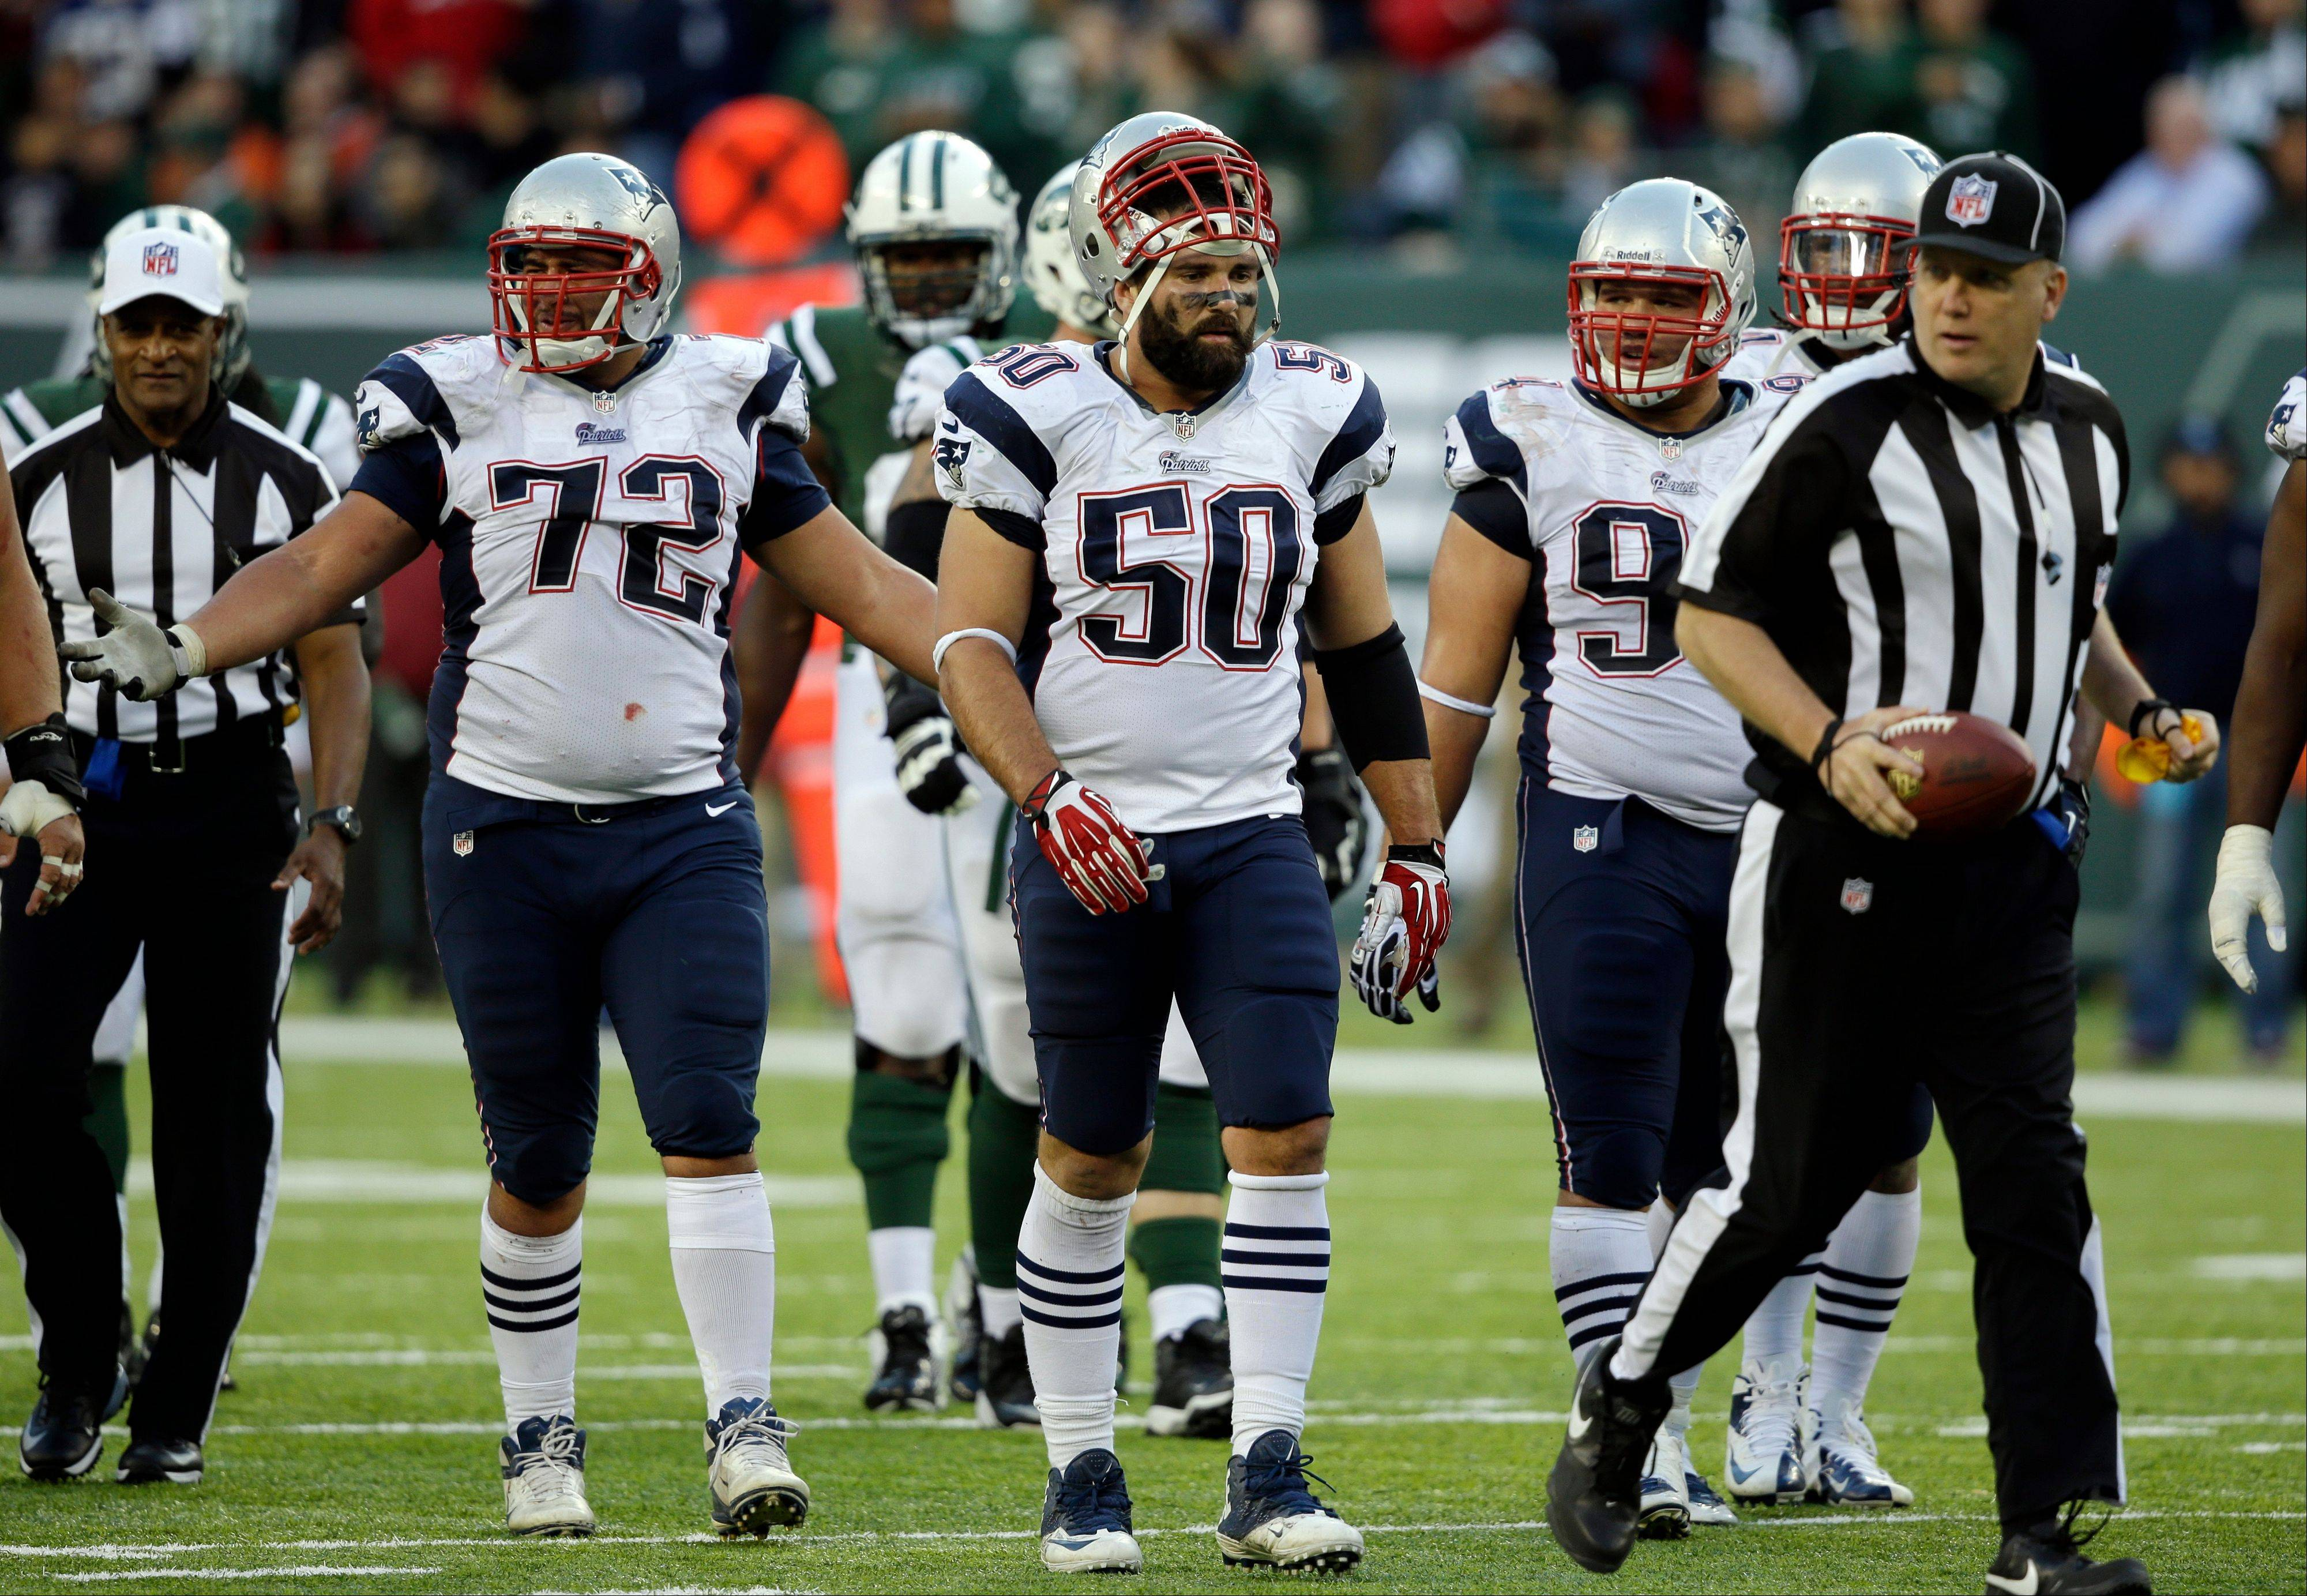 New England Patriots defensive end Rob Ninkovich (50) has 35 tackles and 1 sack this season.